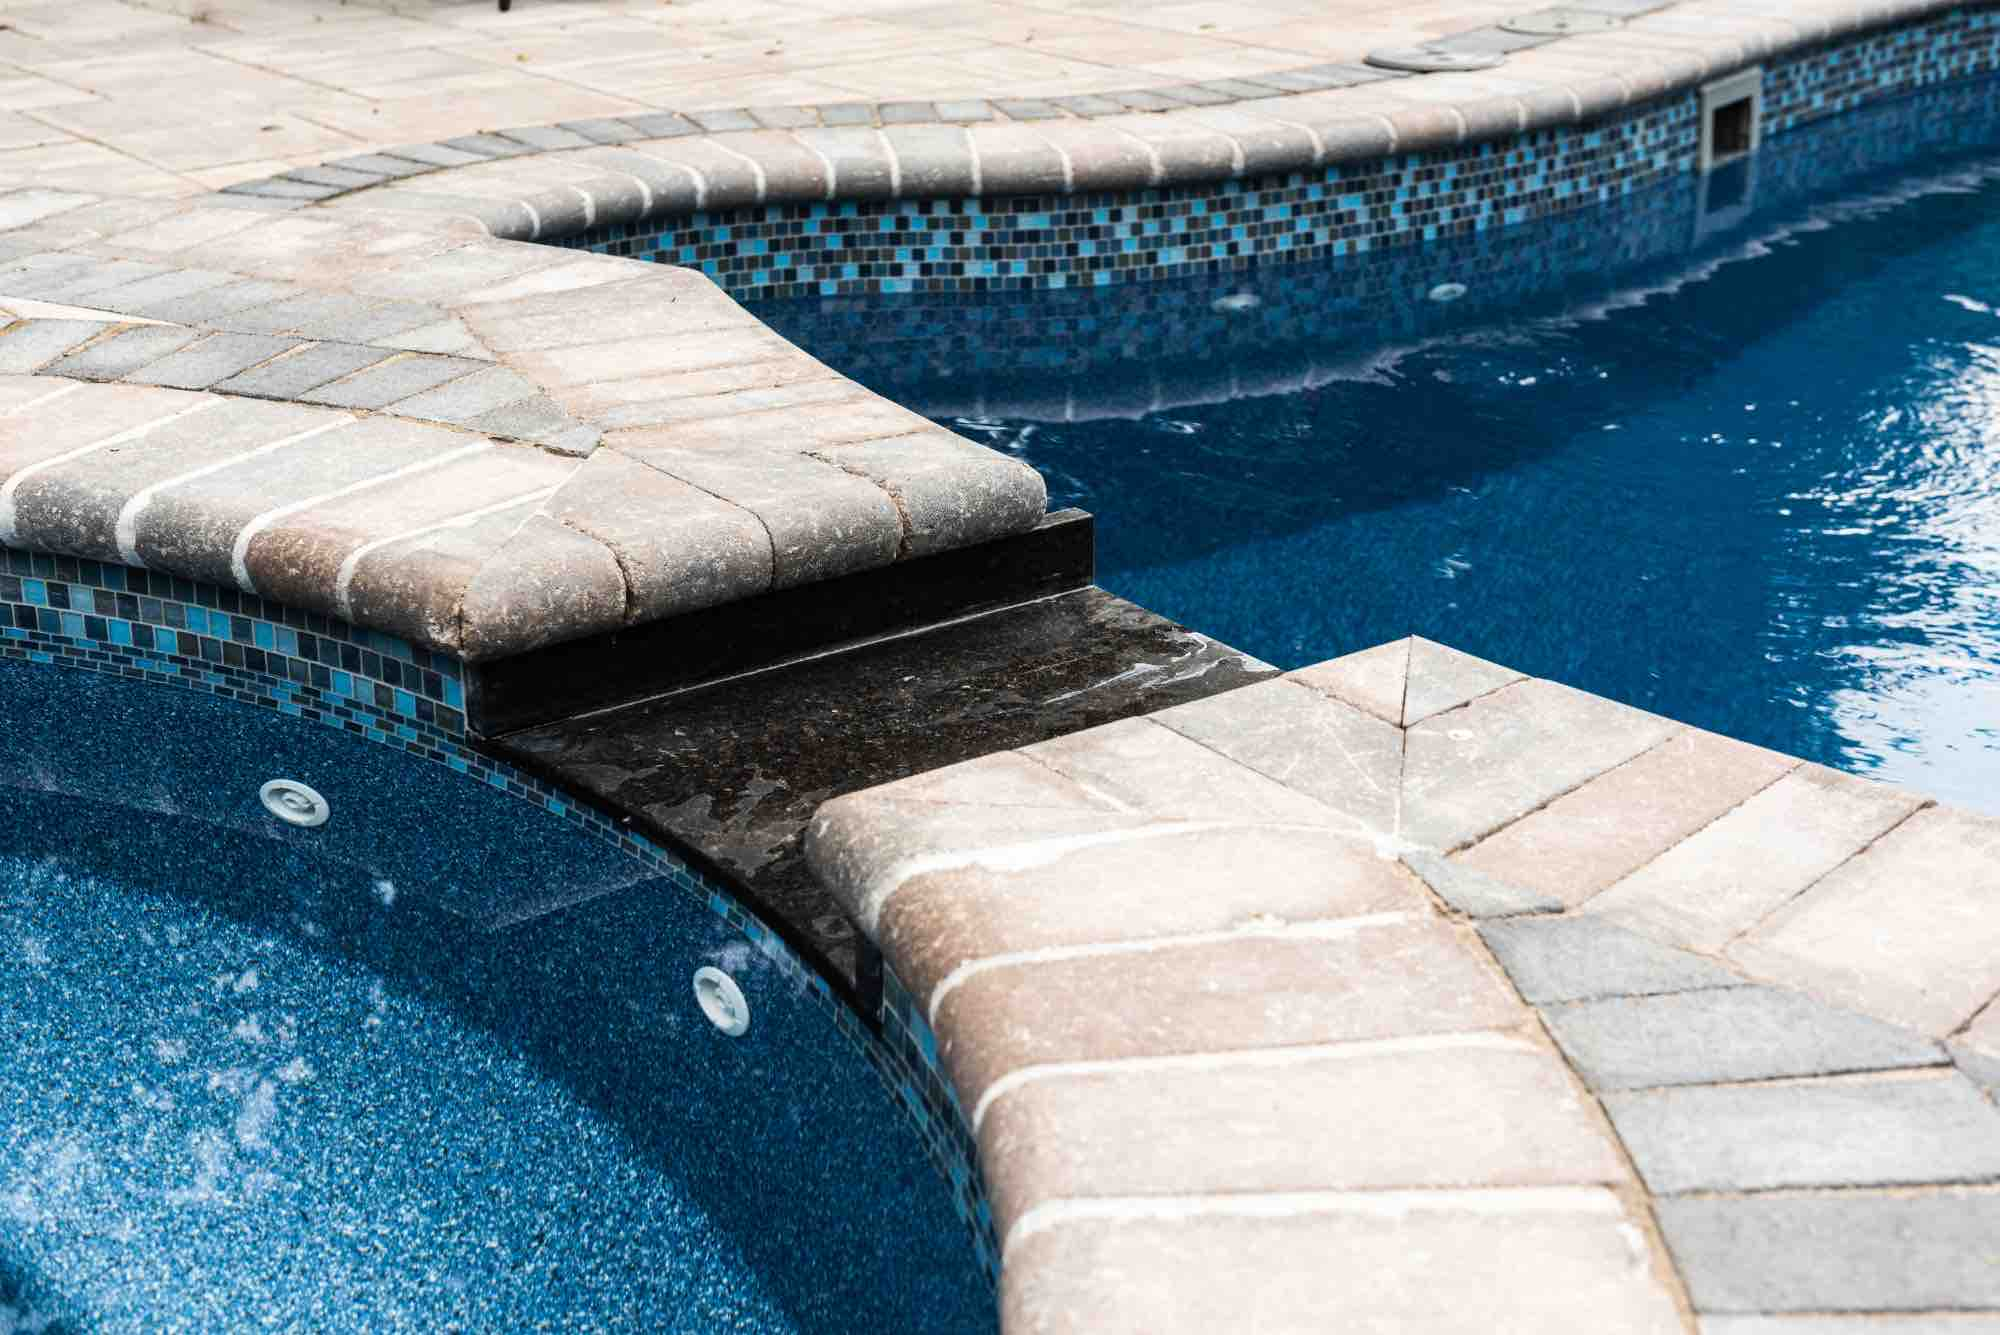 detail of hot tub and pool